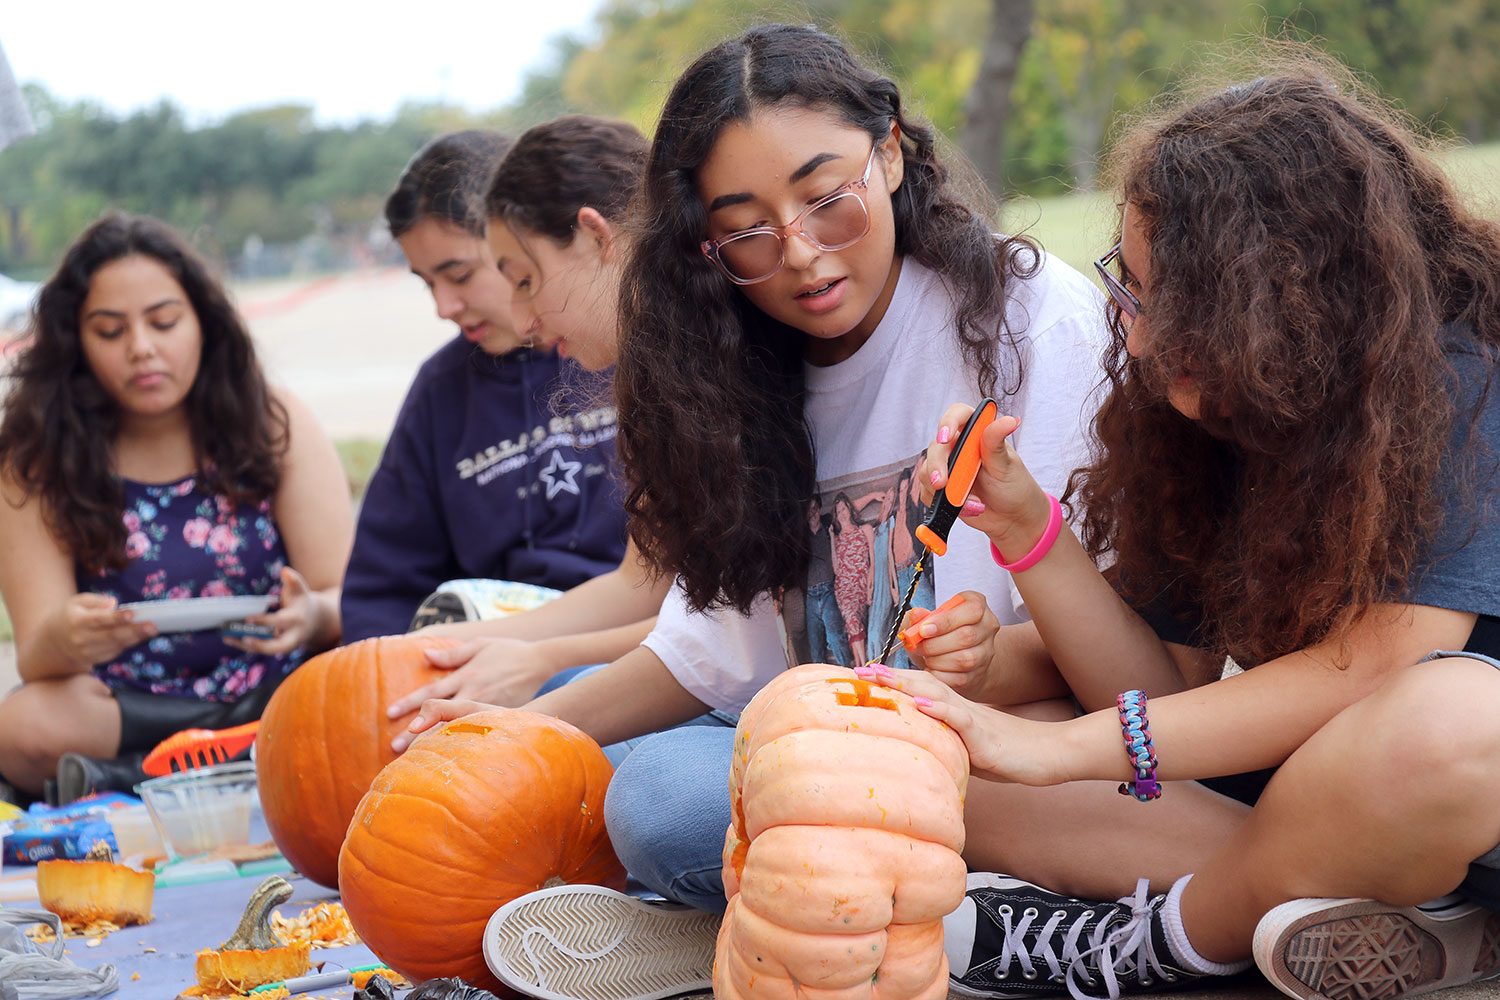 Freshman Danielle Pointer, junior Helen Velasquez, sophomore Rachel Velasquez, junior Leah Coreas and junior Aabha Kc carve their pumpkins at the WRIOT Pumpkin Carving Social.